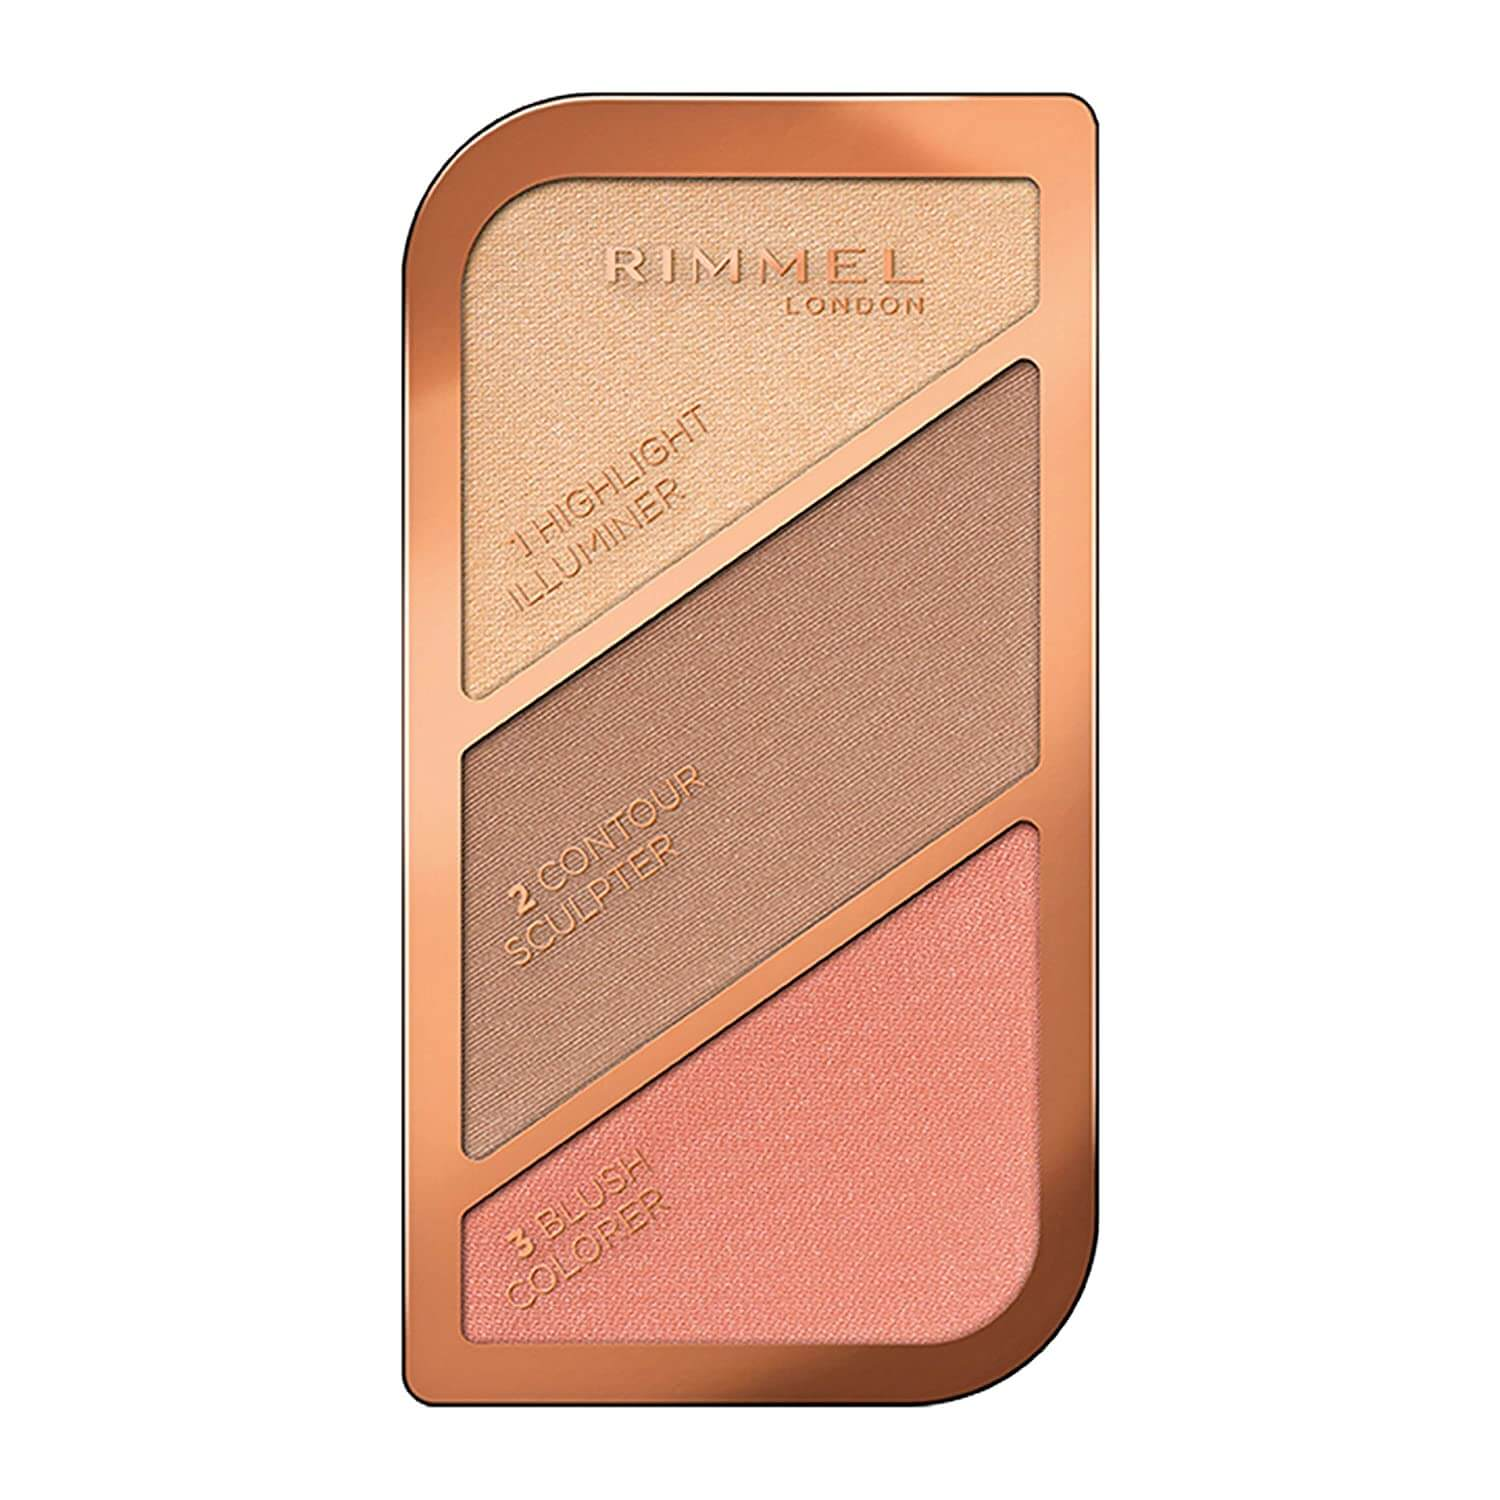 rimmerl sculpting makeup kit that makes face look good